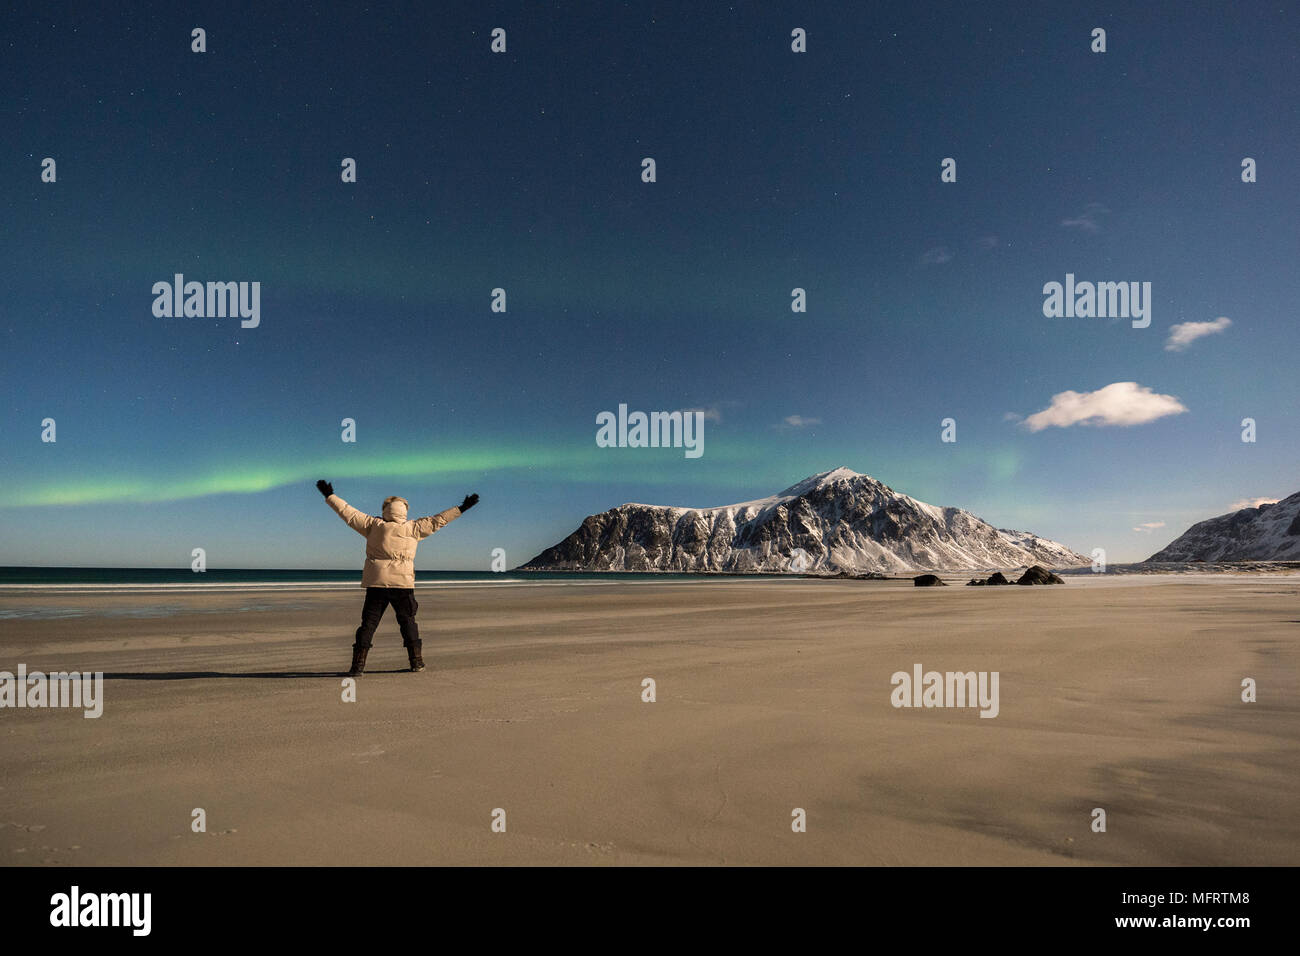 Man watches northern lights on the beach of Skagsanden, Aurora Borealis, Skagsanden, Lofoten, Norway - Stock Image